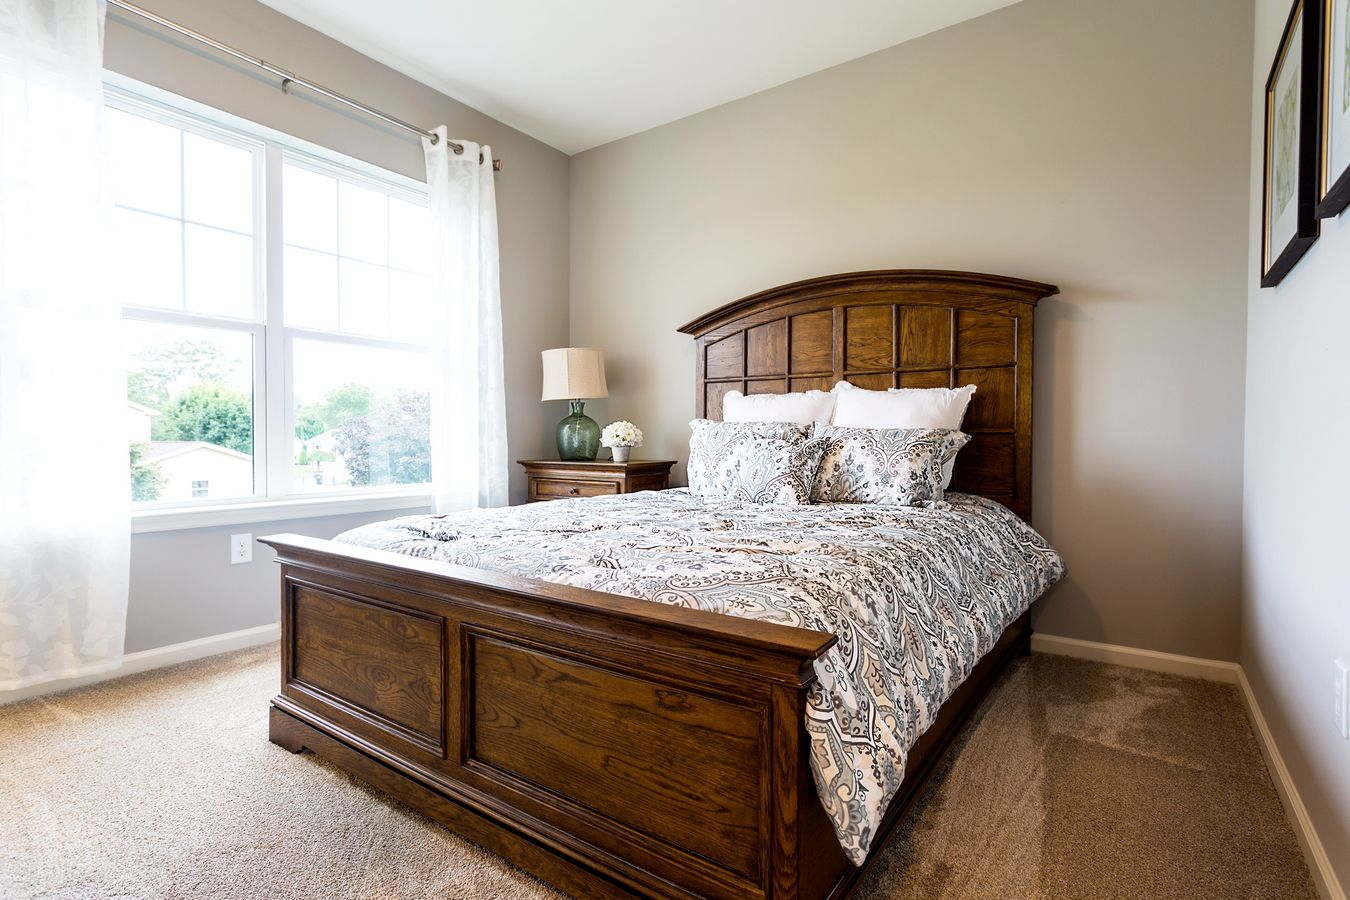 Bedroom featured in the Bellwood Country By Tuskes Homes in Allentown-Bethlehem, PA